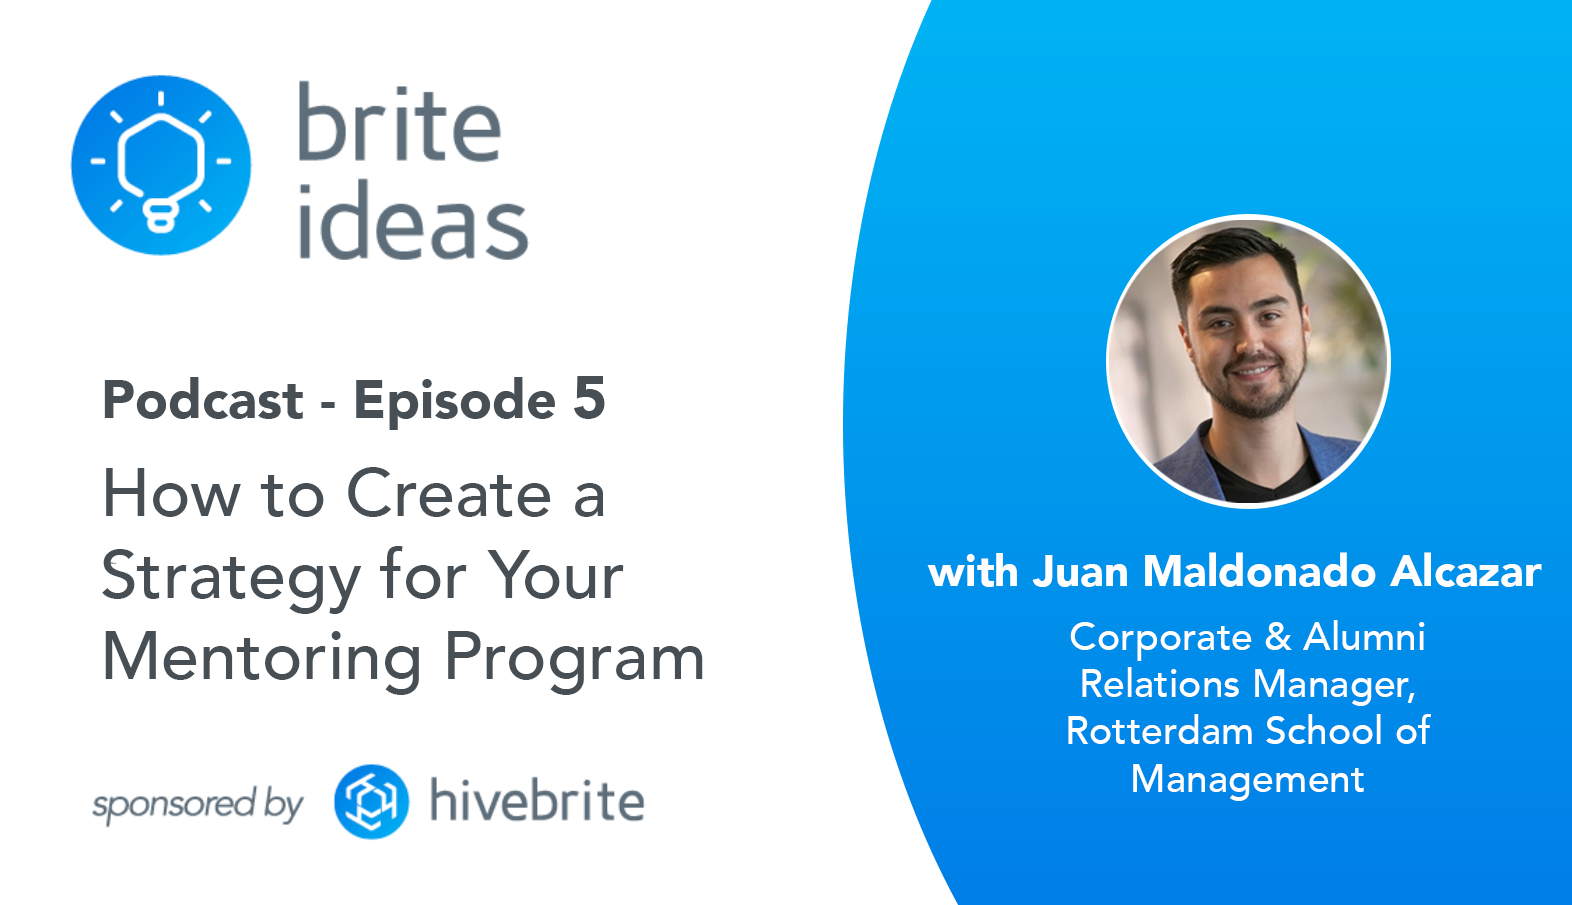 Brite Ideas Podcast: How to Create a Strategy for Your Mentoring Program